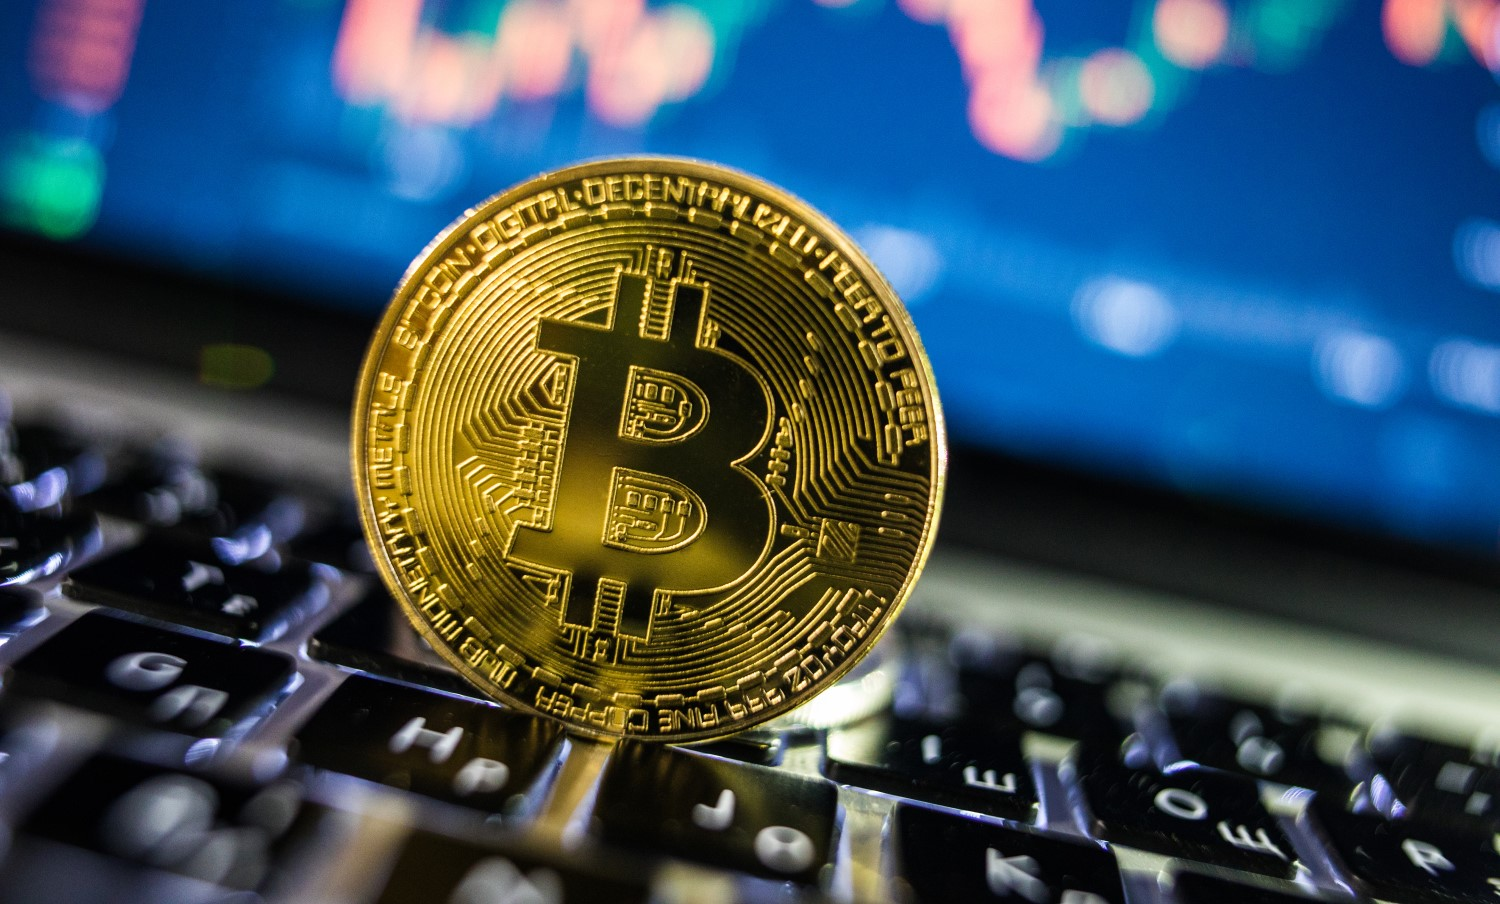 Bitcoin nears record before largest US crypto exchange listing